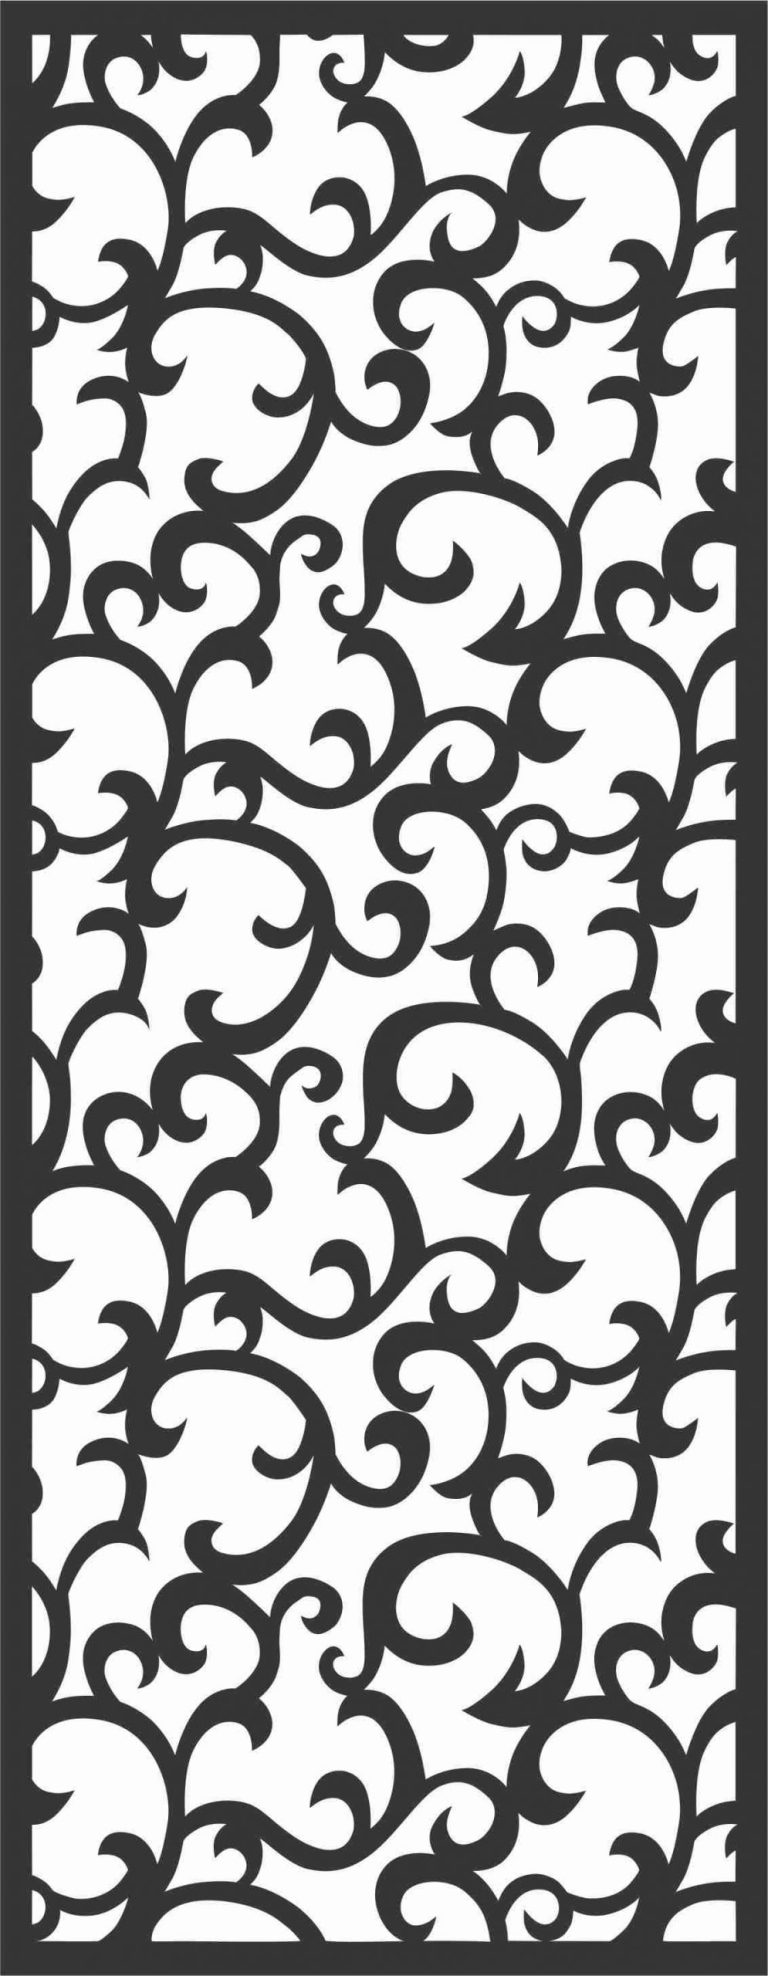 Floral Screen Patterns Design 57 Free DXF File